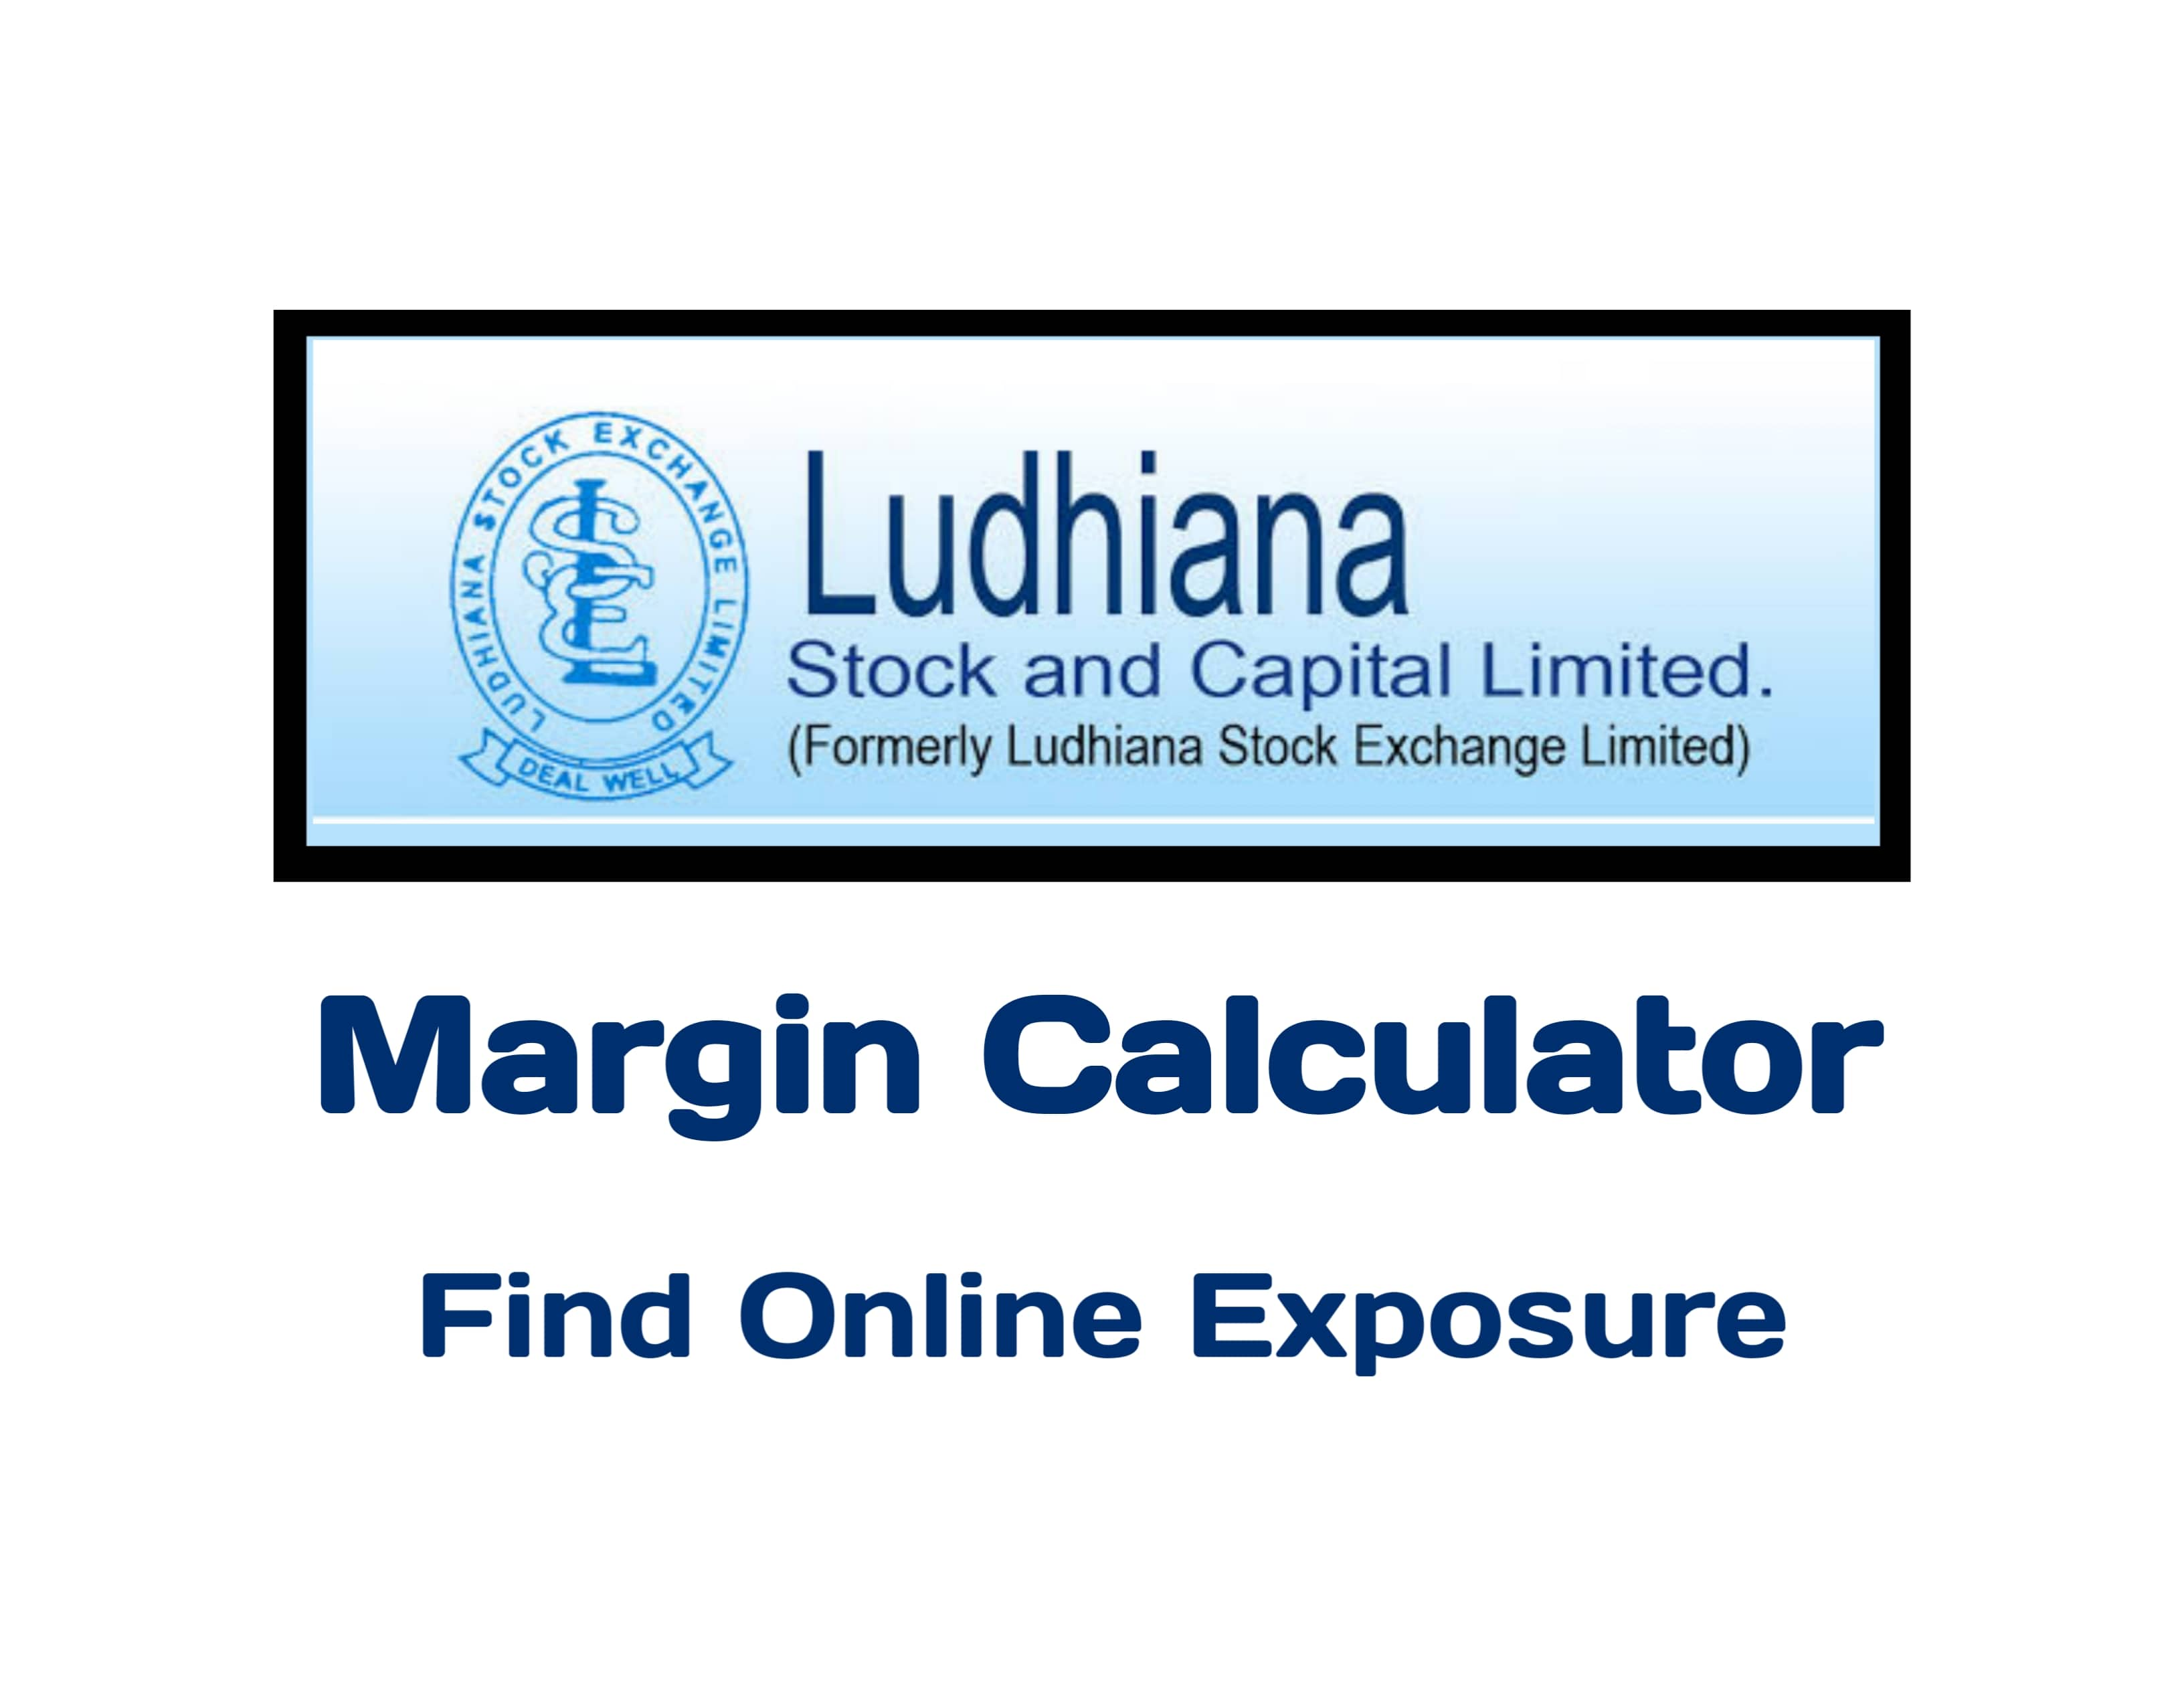 Ludhiana Stock Capital Margin Calculator